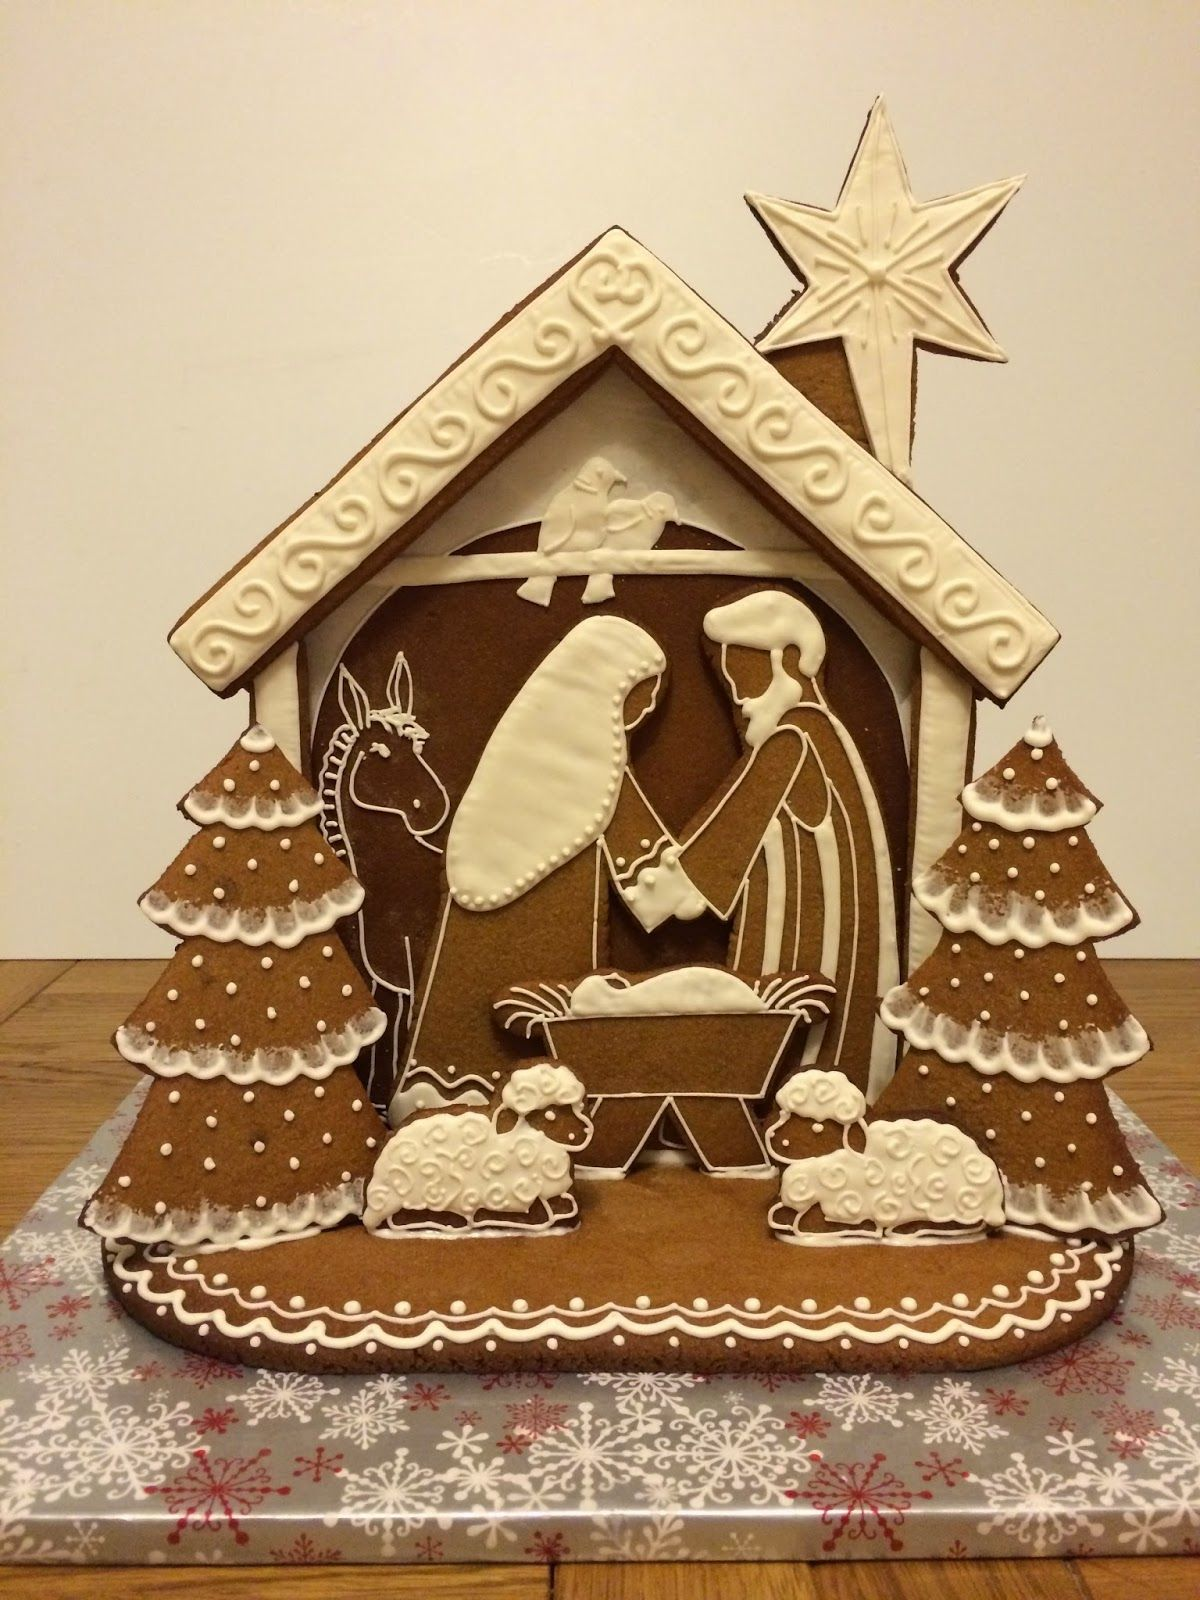 Elaine's Sweet Life: Gingerbread Nativity {Tutorial} | Christmas gingerbread house, Gingerbread, Gingerbread house cookies